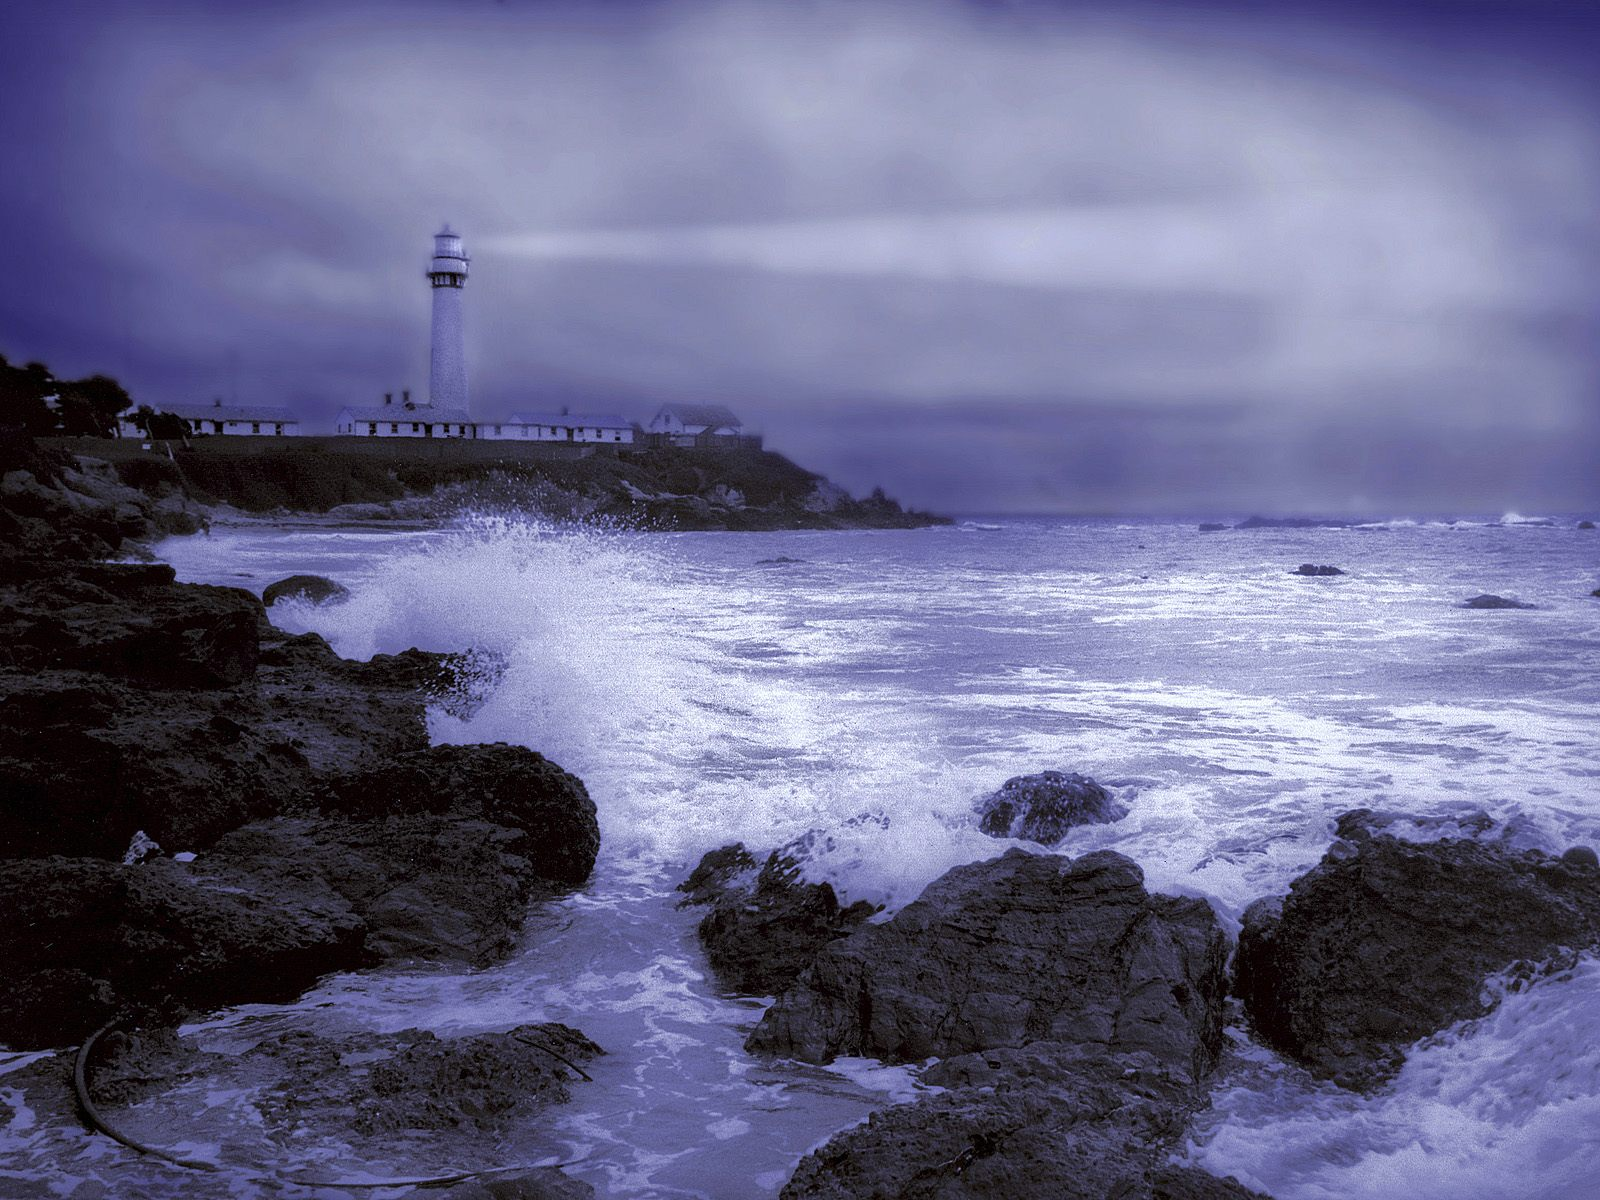 Lighthouse Stormy Weather Pigeon Point Light Station California 1600x1200